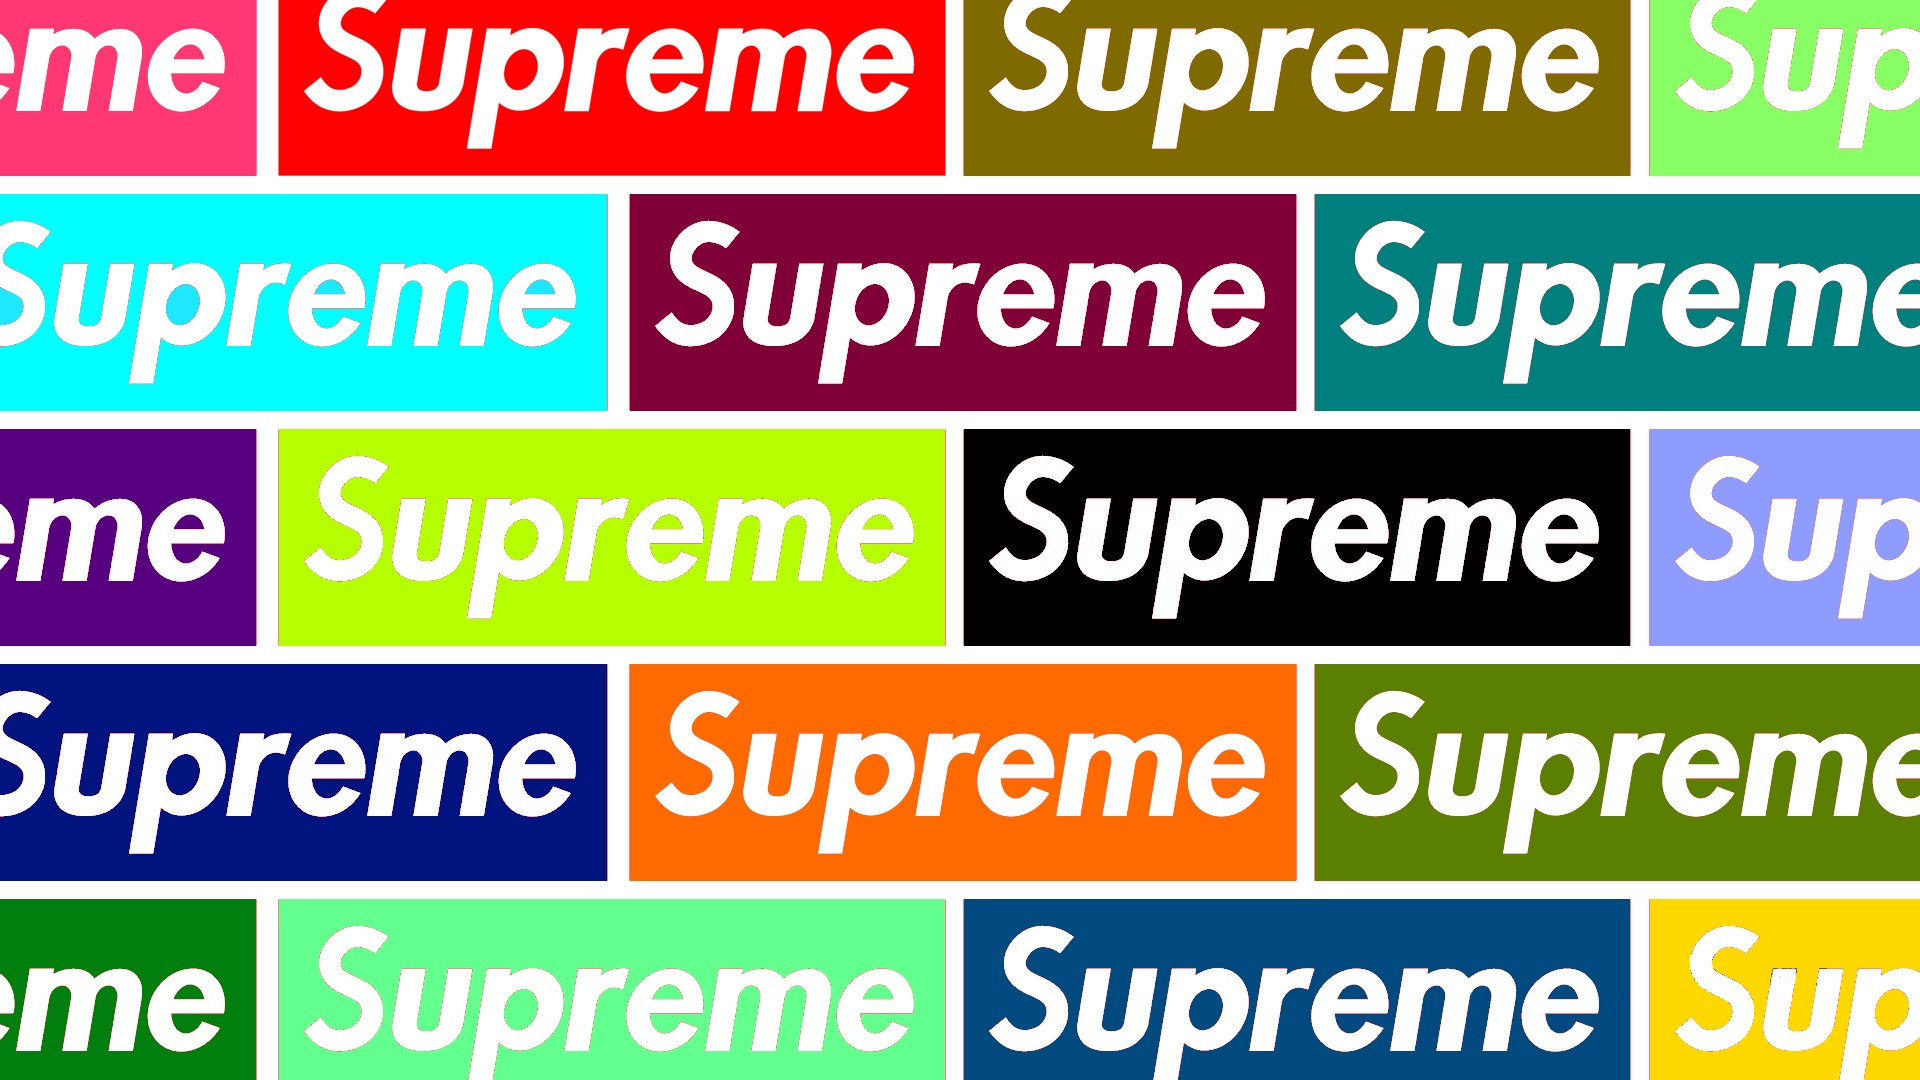 supreme bape iphone wallpaper